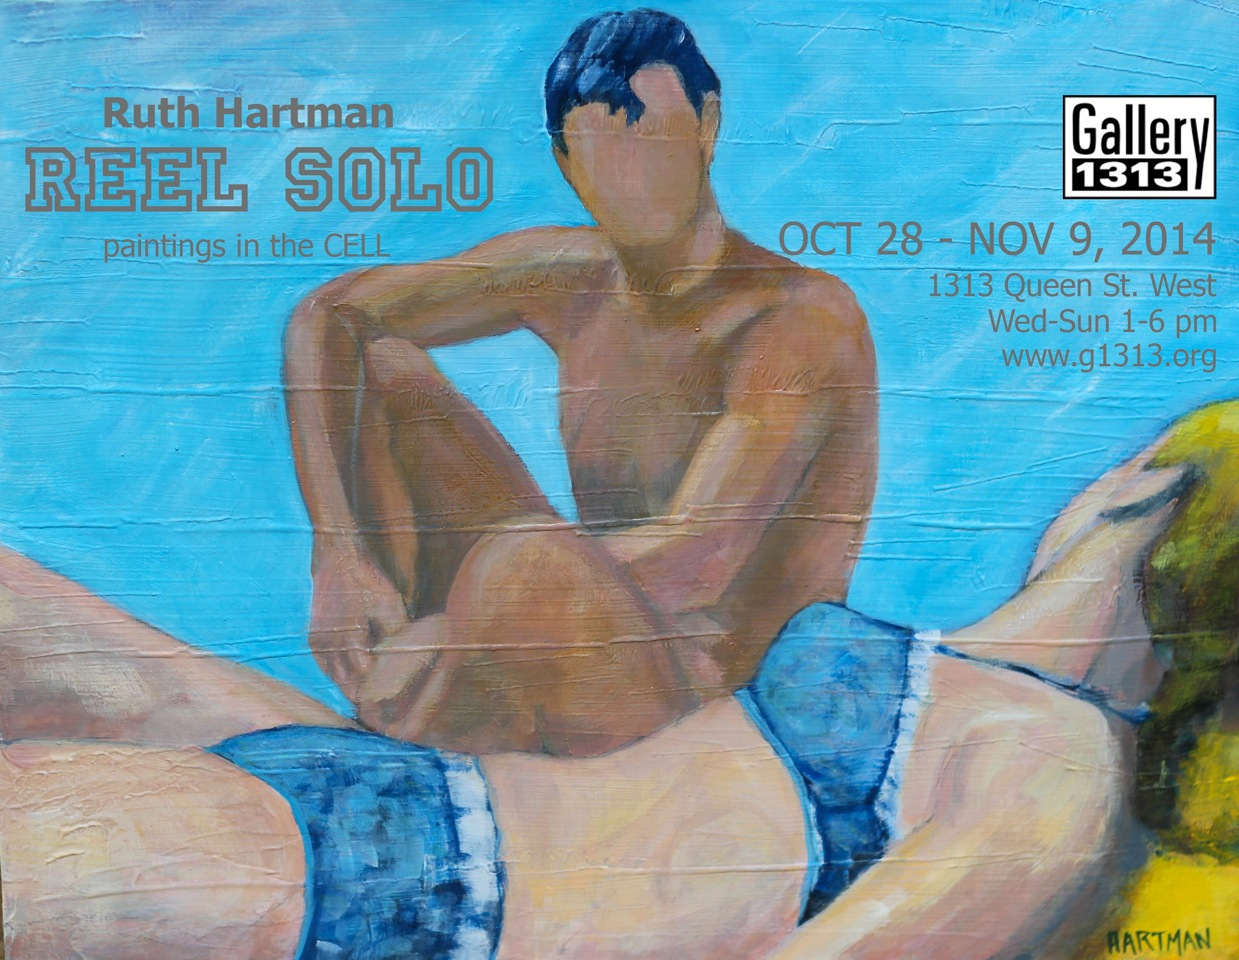 REEL SOLO by Ruth Hartman, CELL Gallery, Oct 28 -Nov 9, 2014